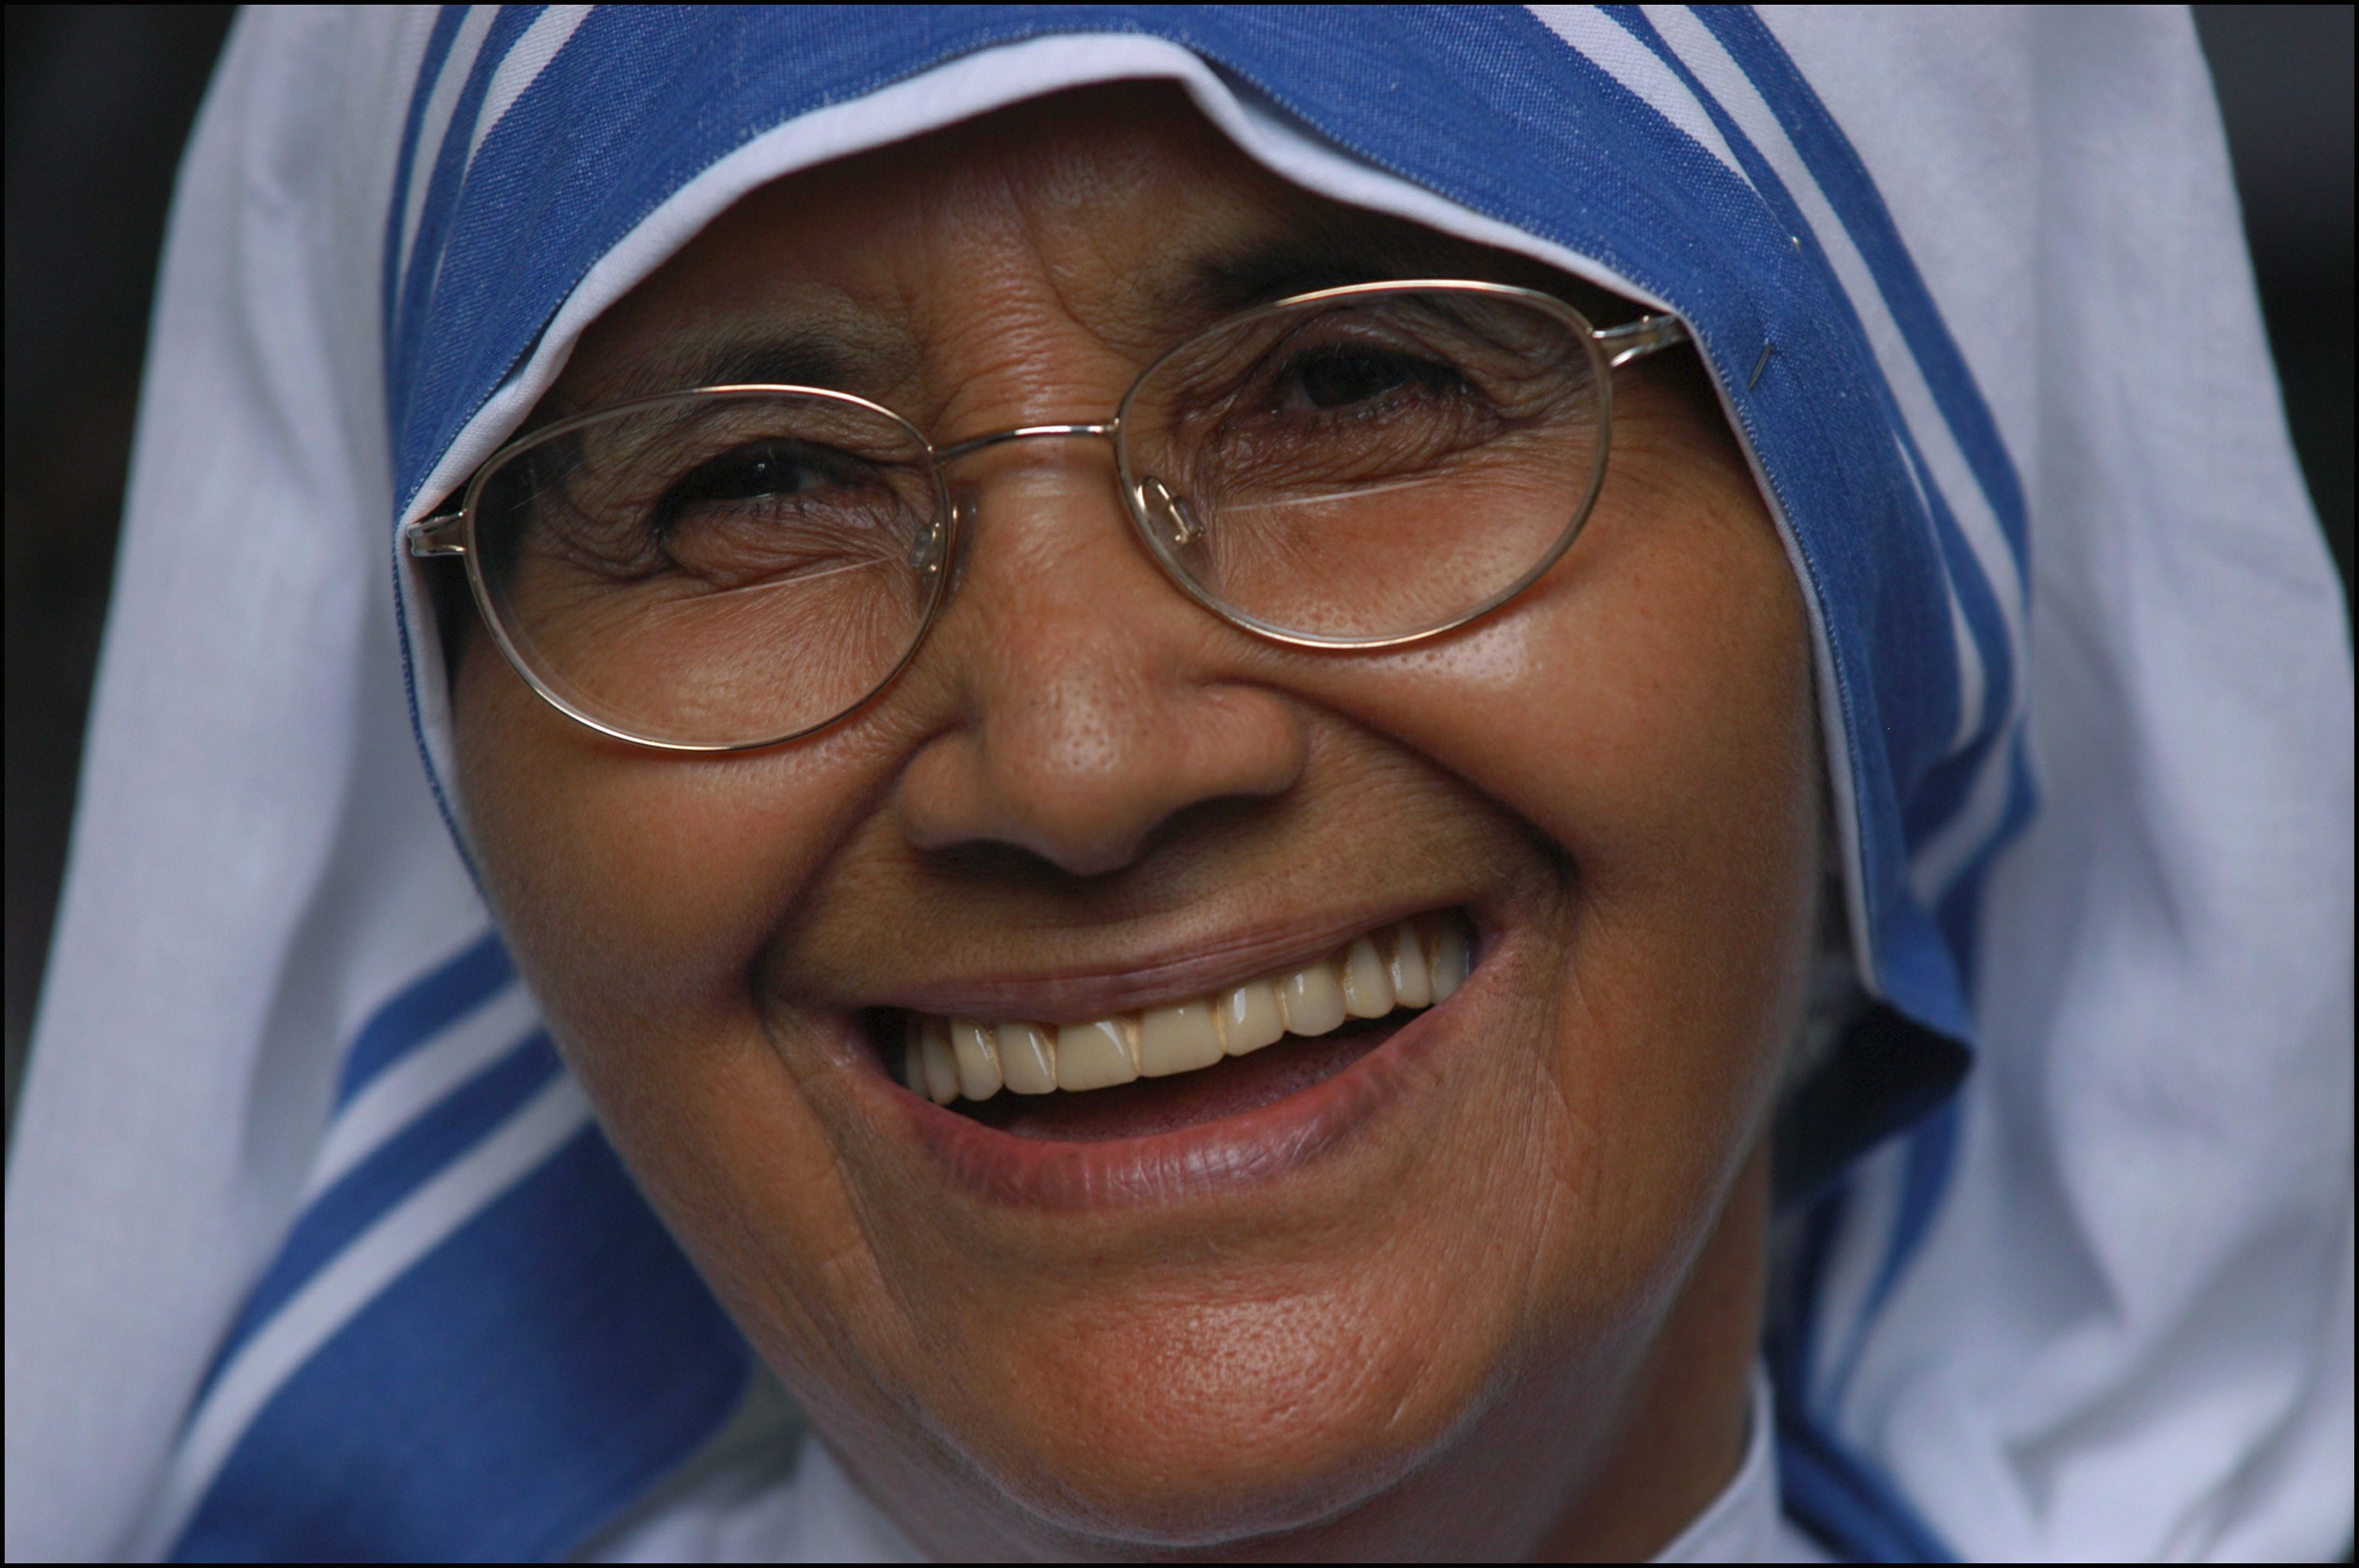 Sister Nirmala Joshi, Mother Teresa's successor as superior general of the Missionaries of Charity, in Kolkata on Sept. 1, 2003